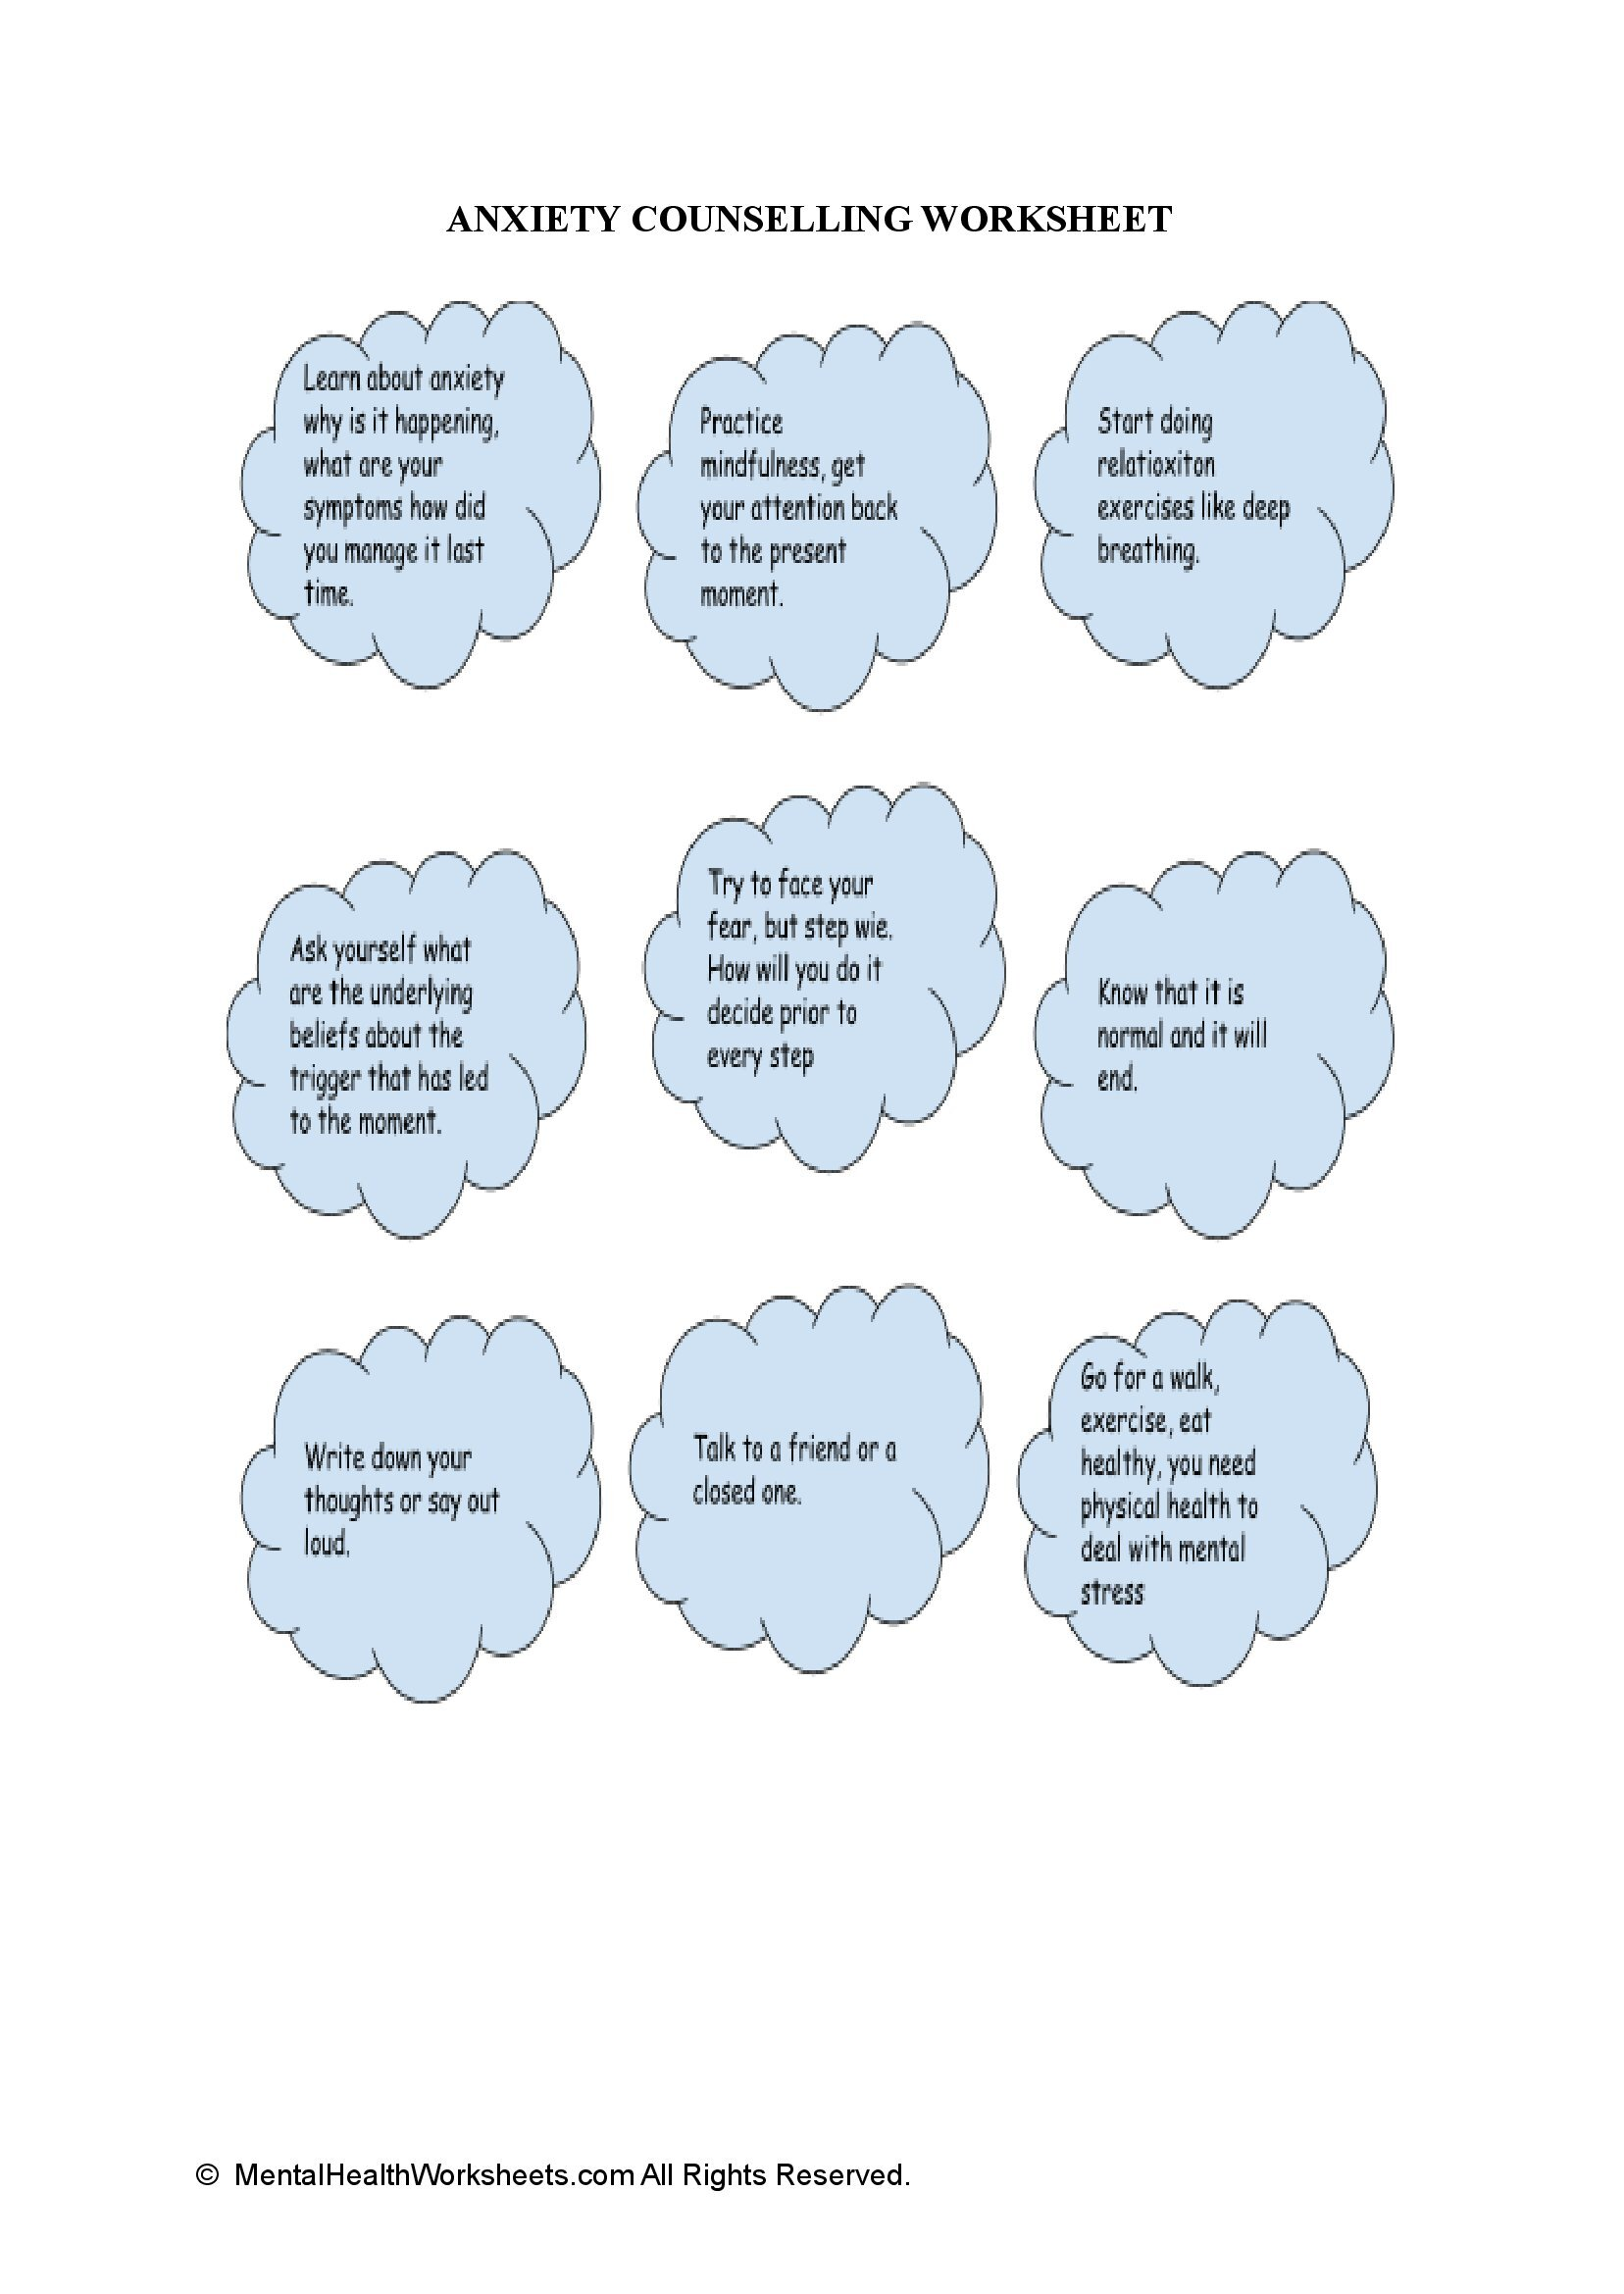 ANXIETY COUNSELLING WORKSHEET